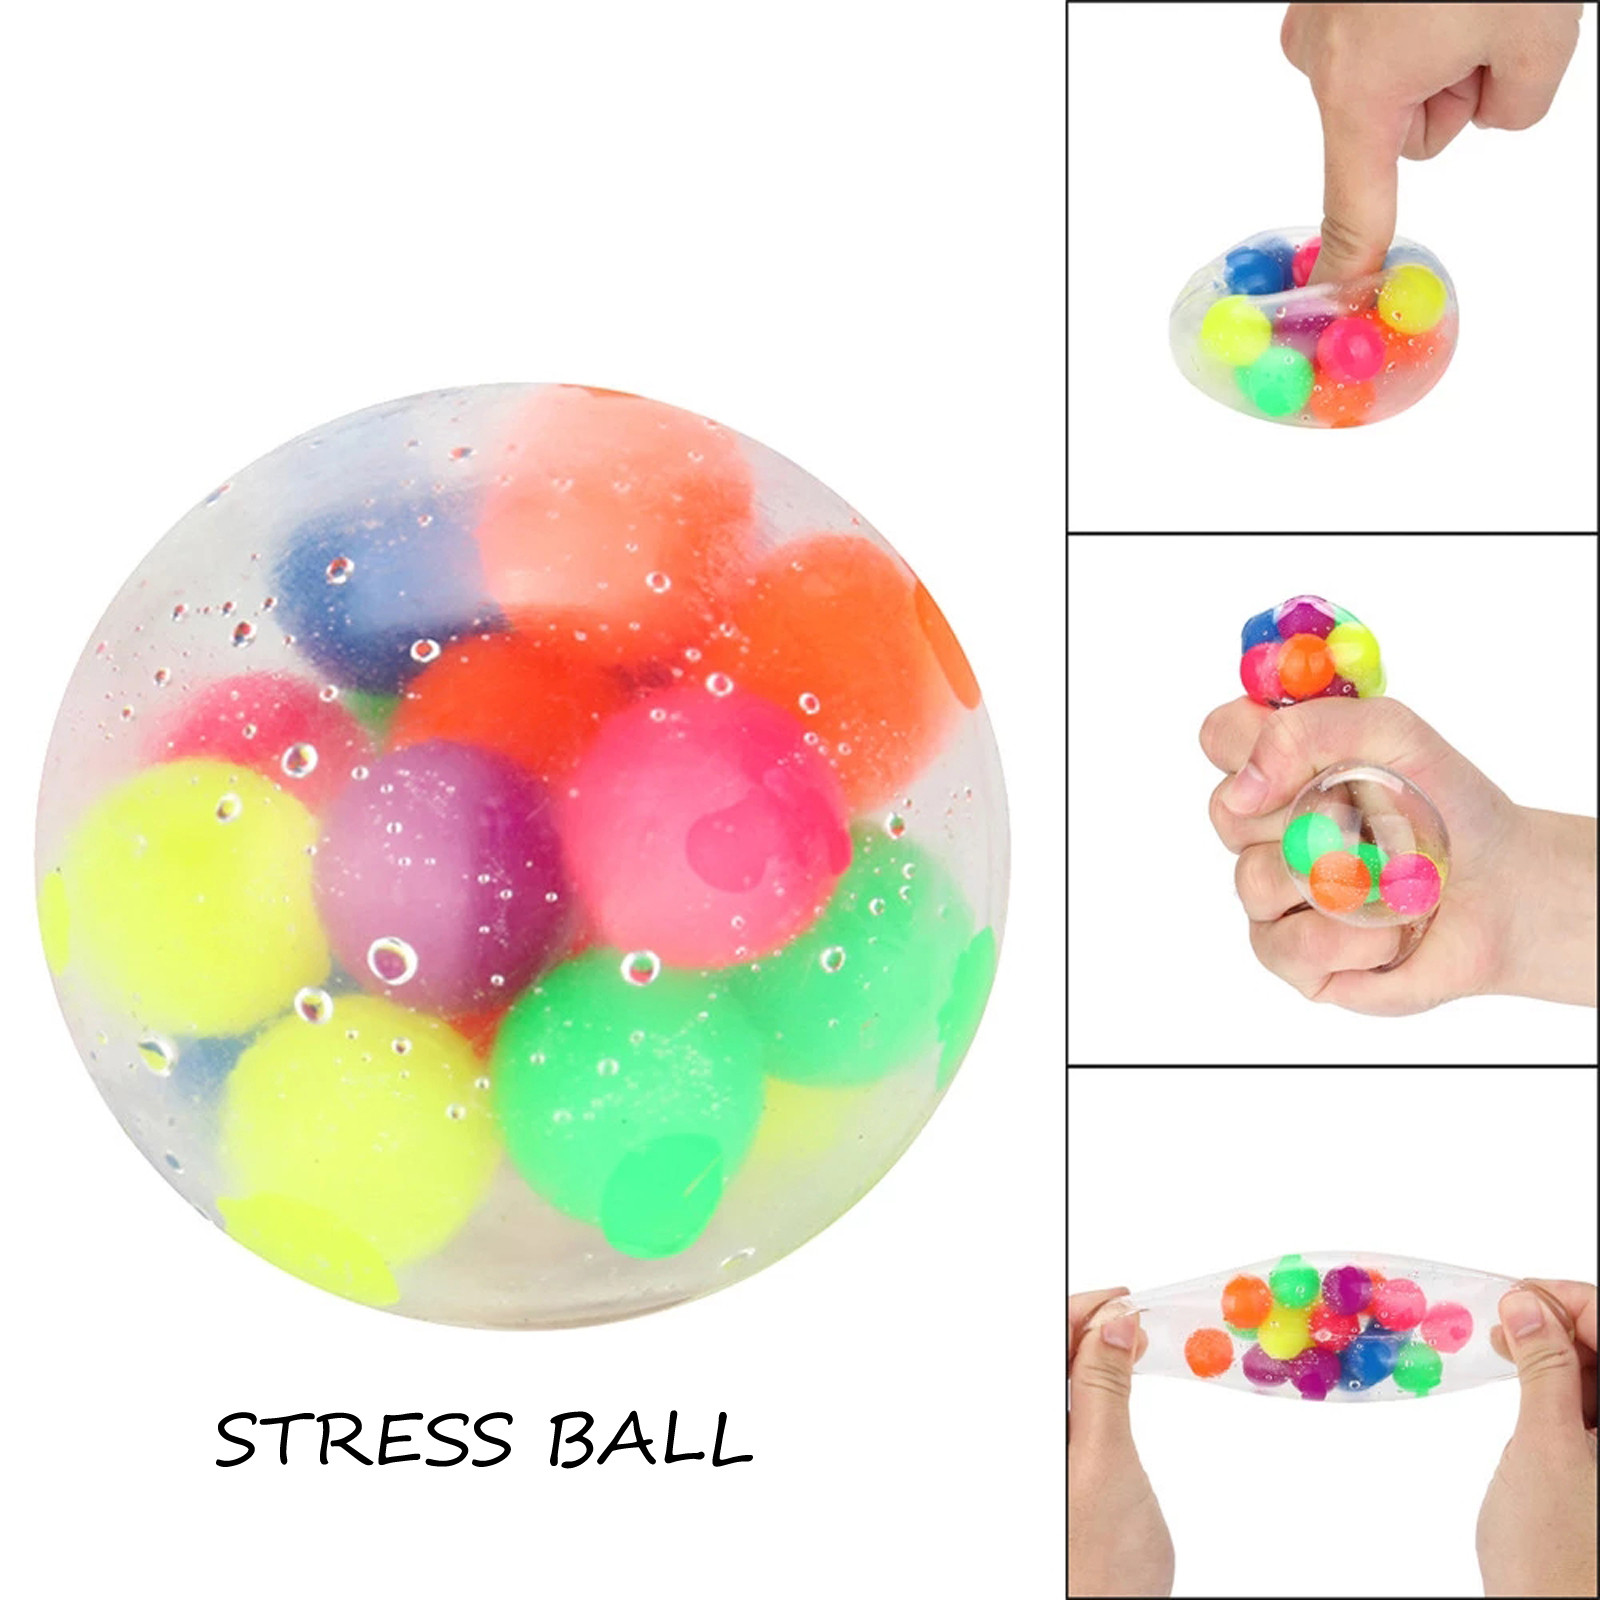 Figet Toys Stress-Ball Popit Pressure-Ball-Stress Reliever Color-Sensory 2PCS Office img1